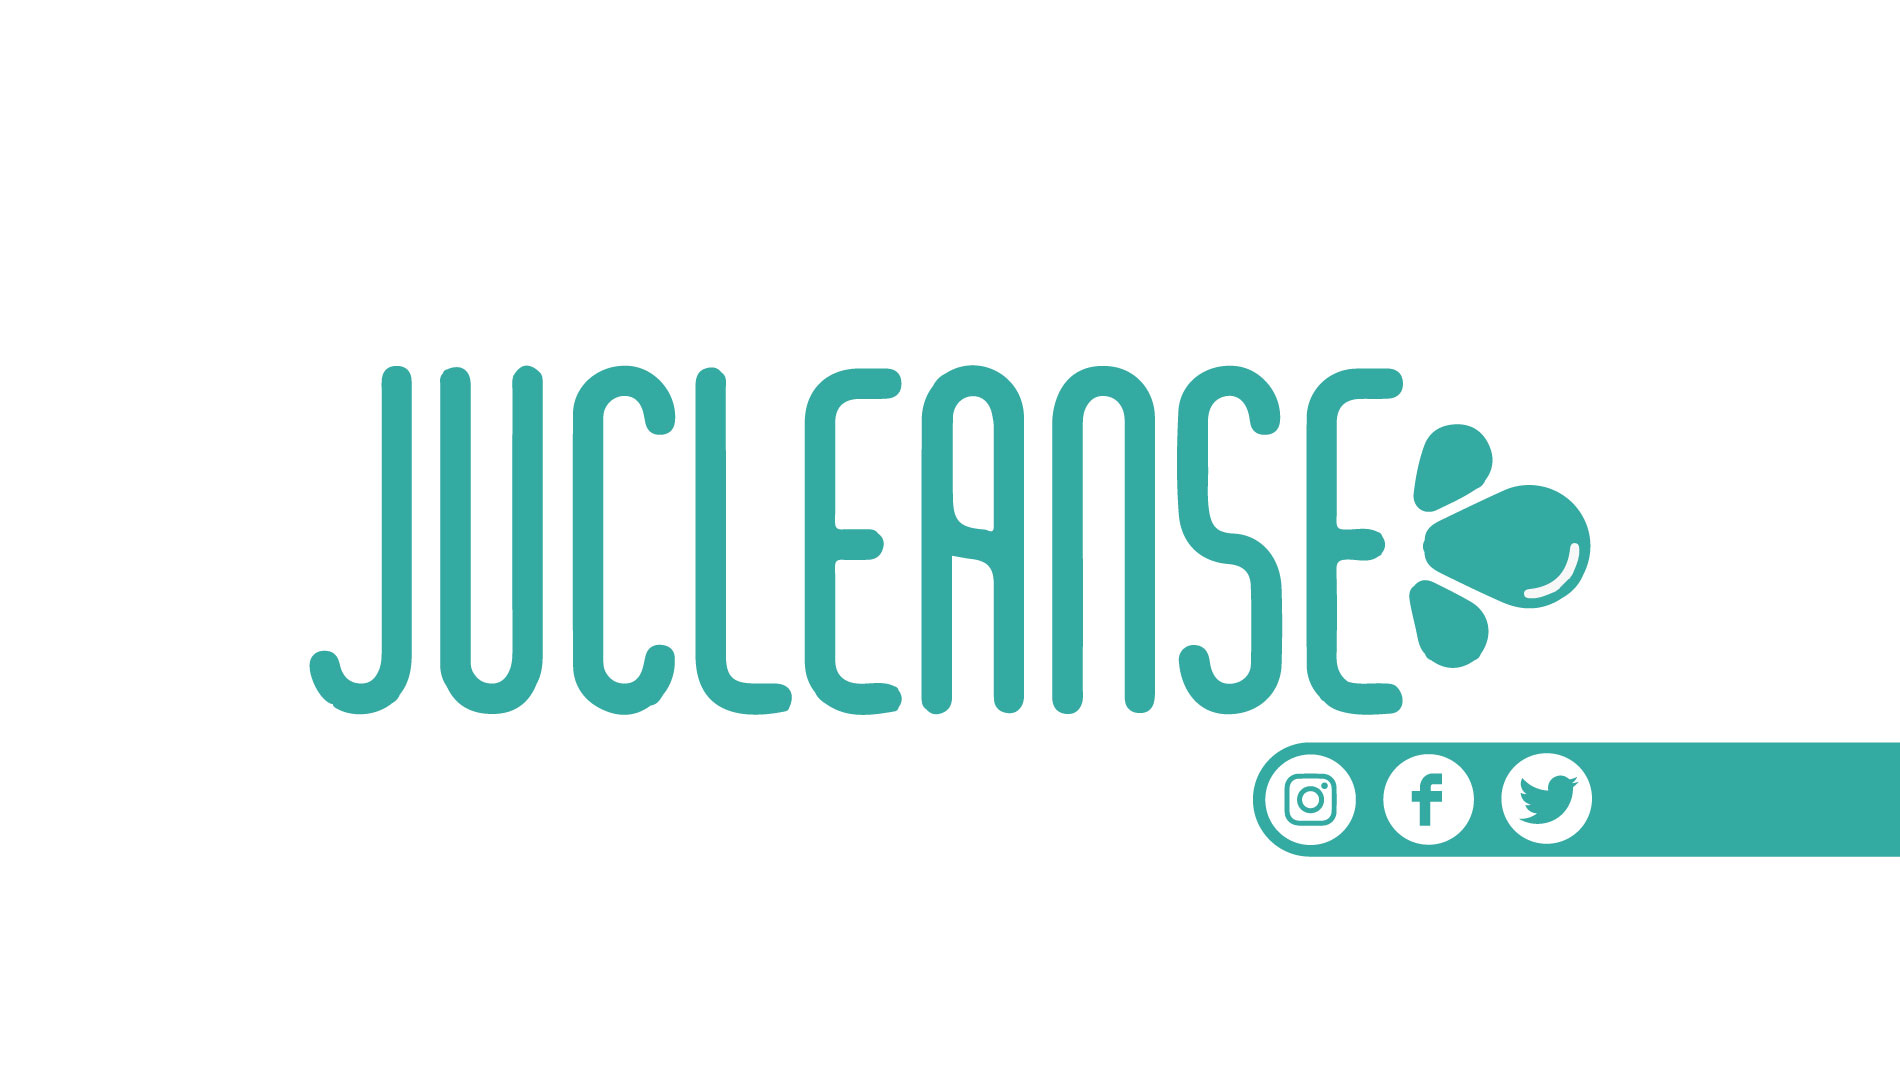 jucleanse